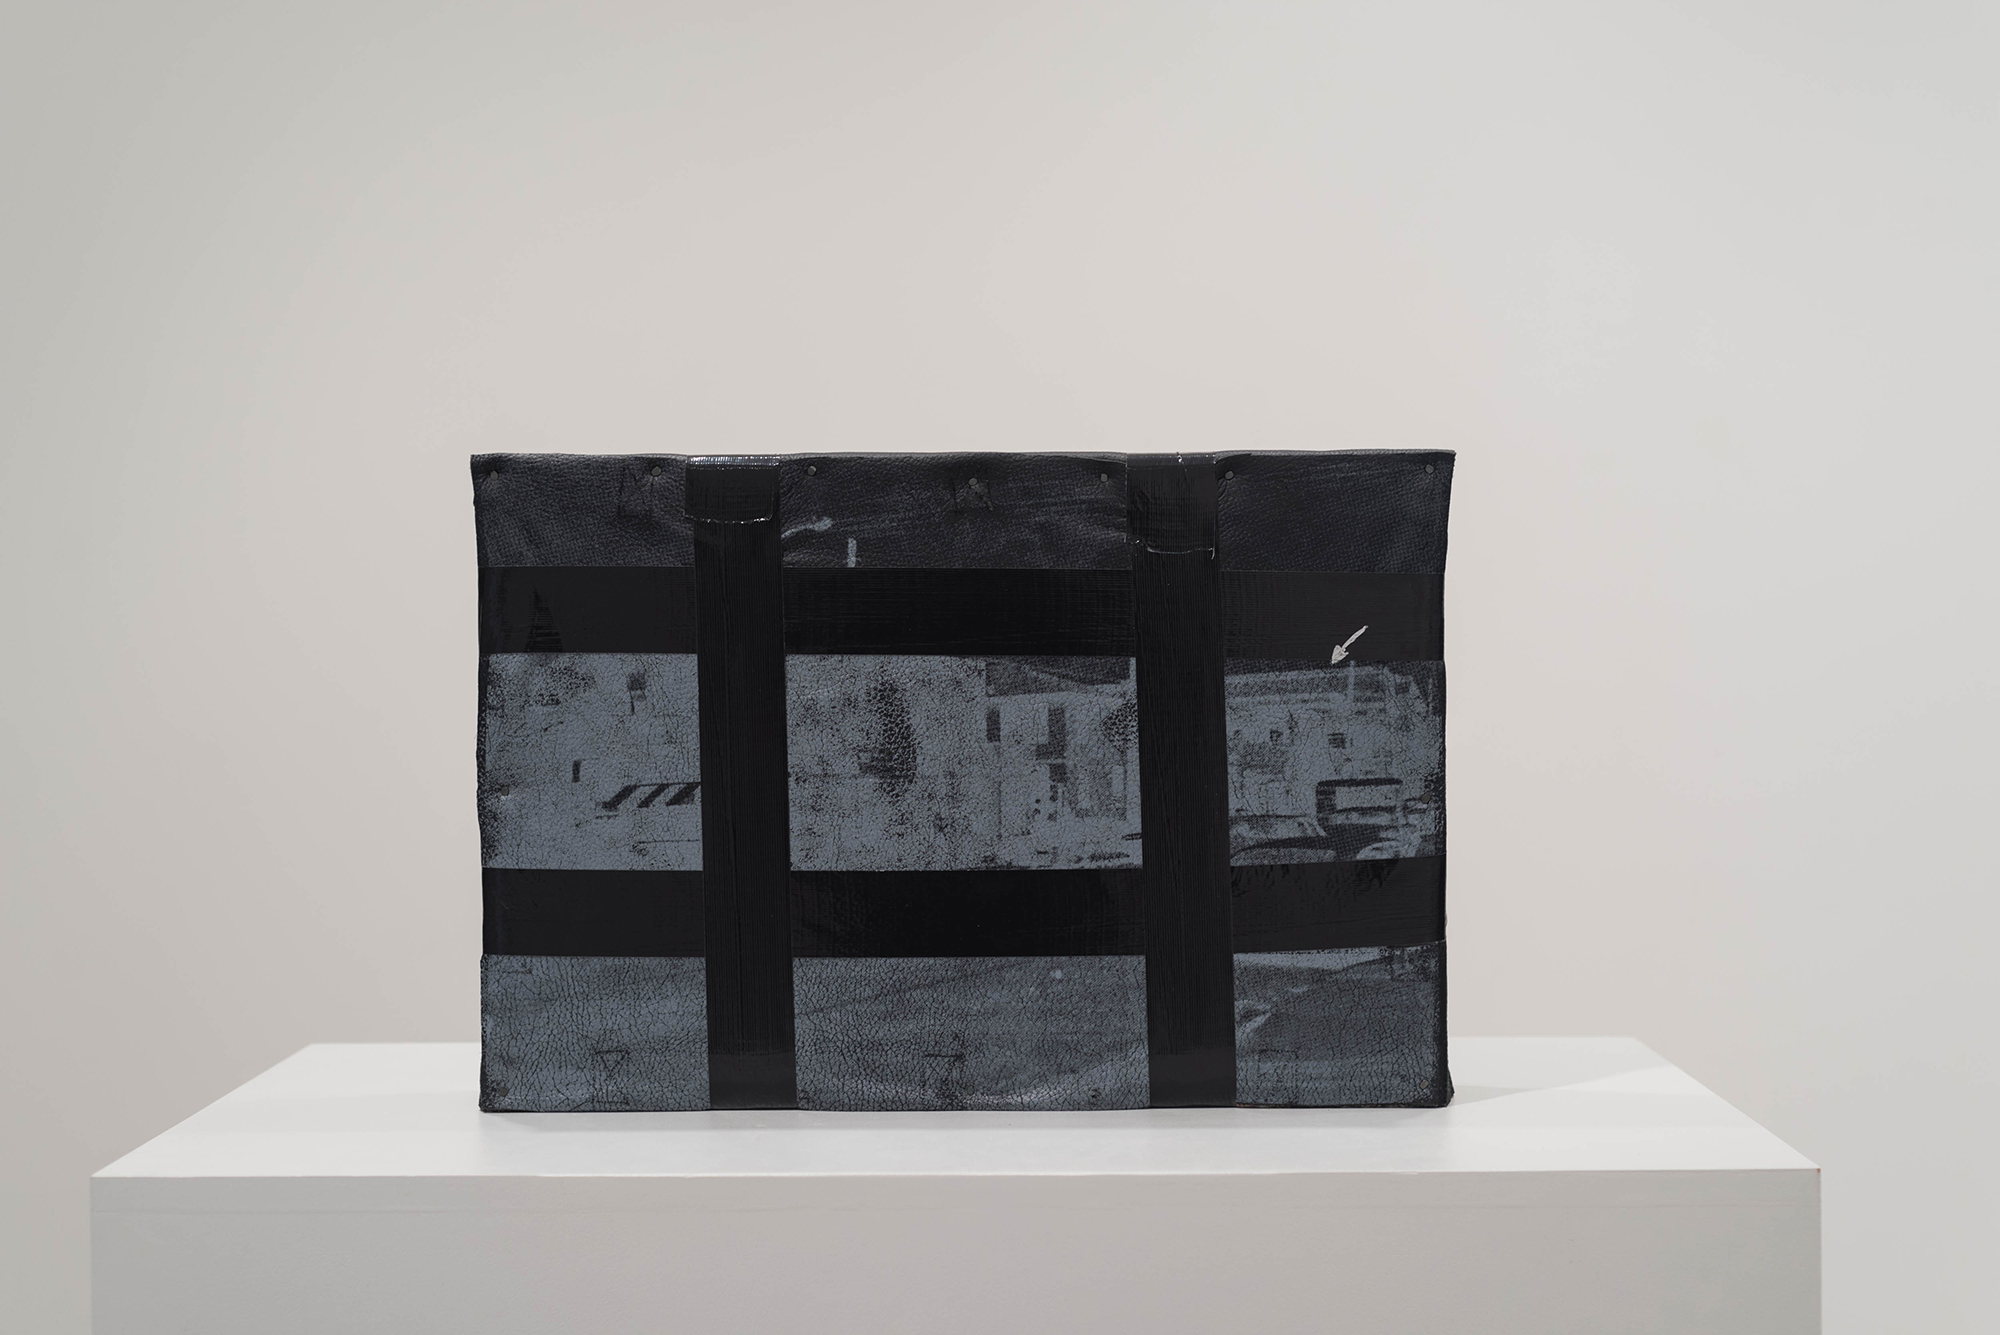 Jamal Cyrus, Phylactery to Repel Ghosts, 2014, screenprint on leather, tape, wood, tacks, 14 1/2 x 21 1/2 x 3 1/2 inches